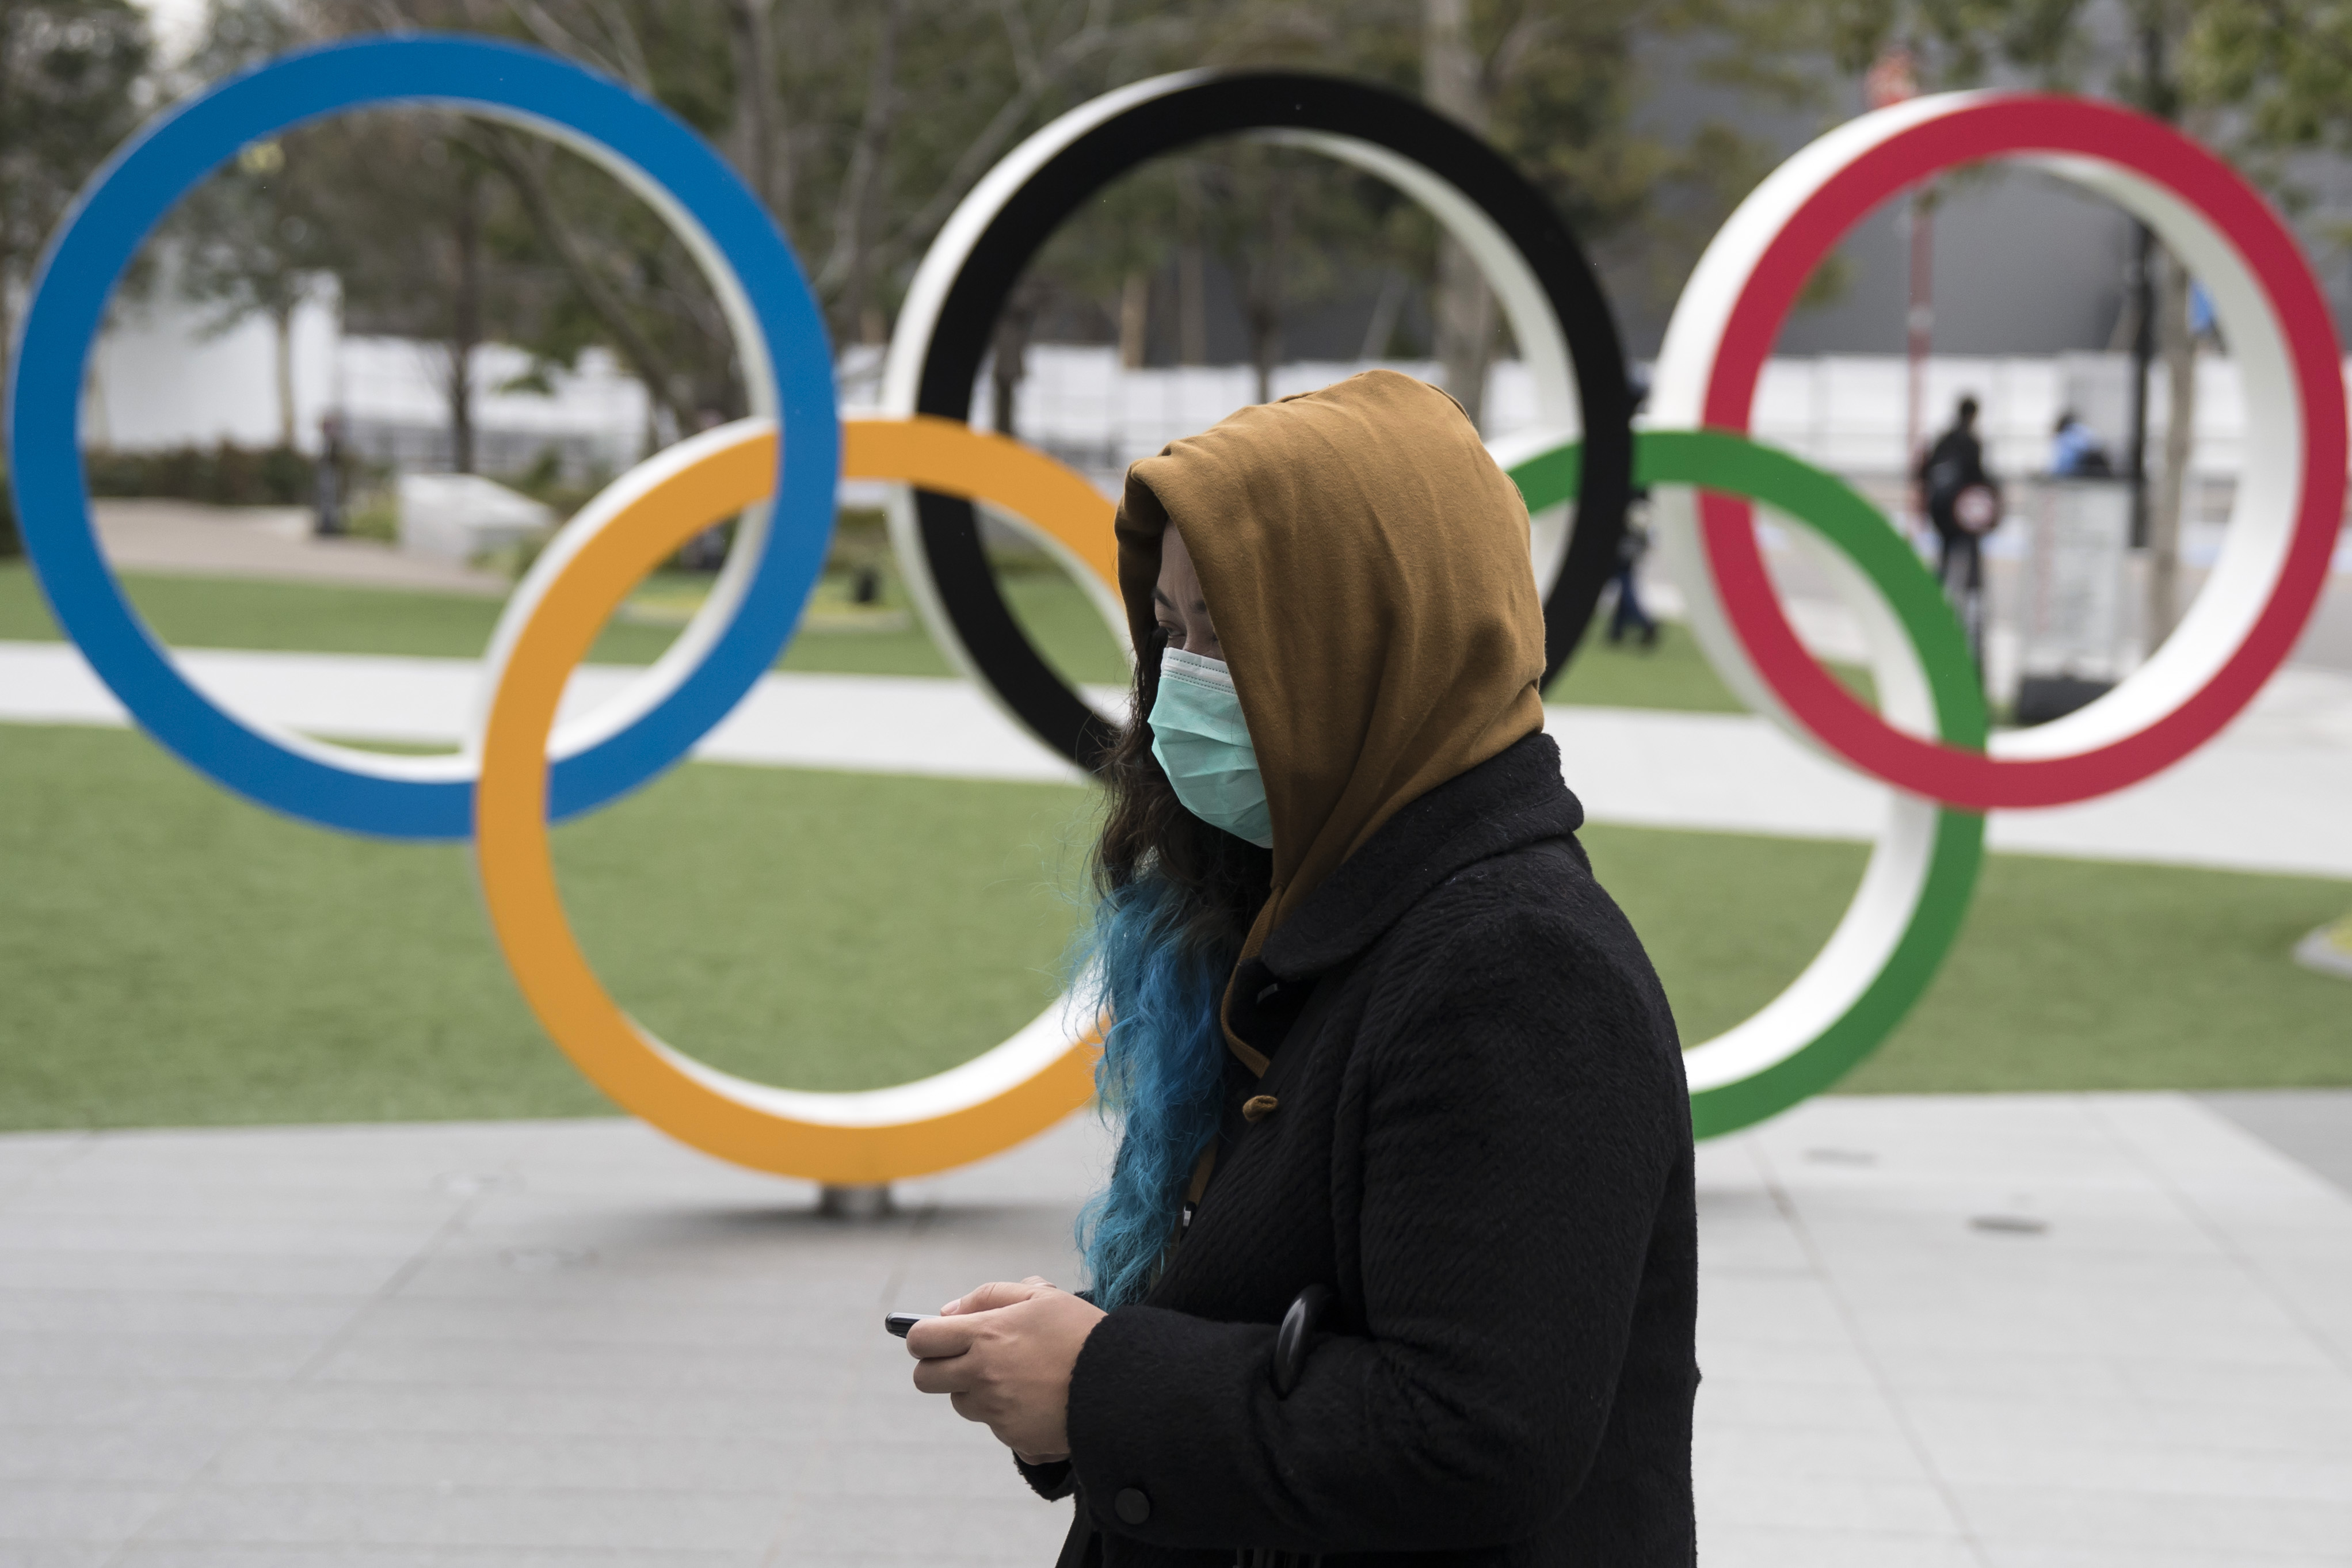 Tokyo 2020 preparations going ahead 'as planned' despite coronavirus threat